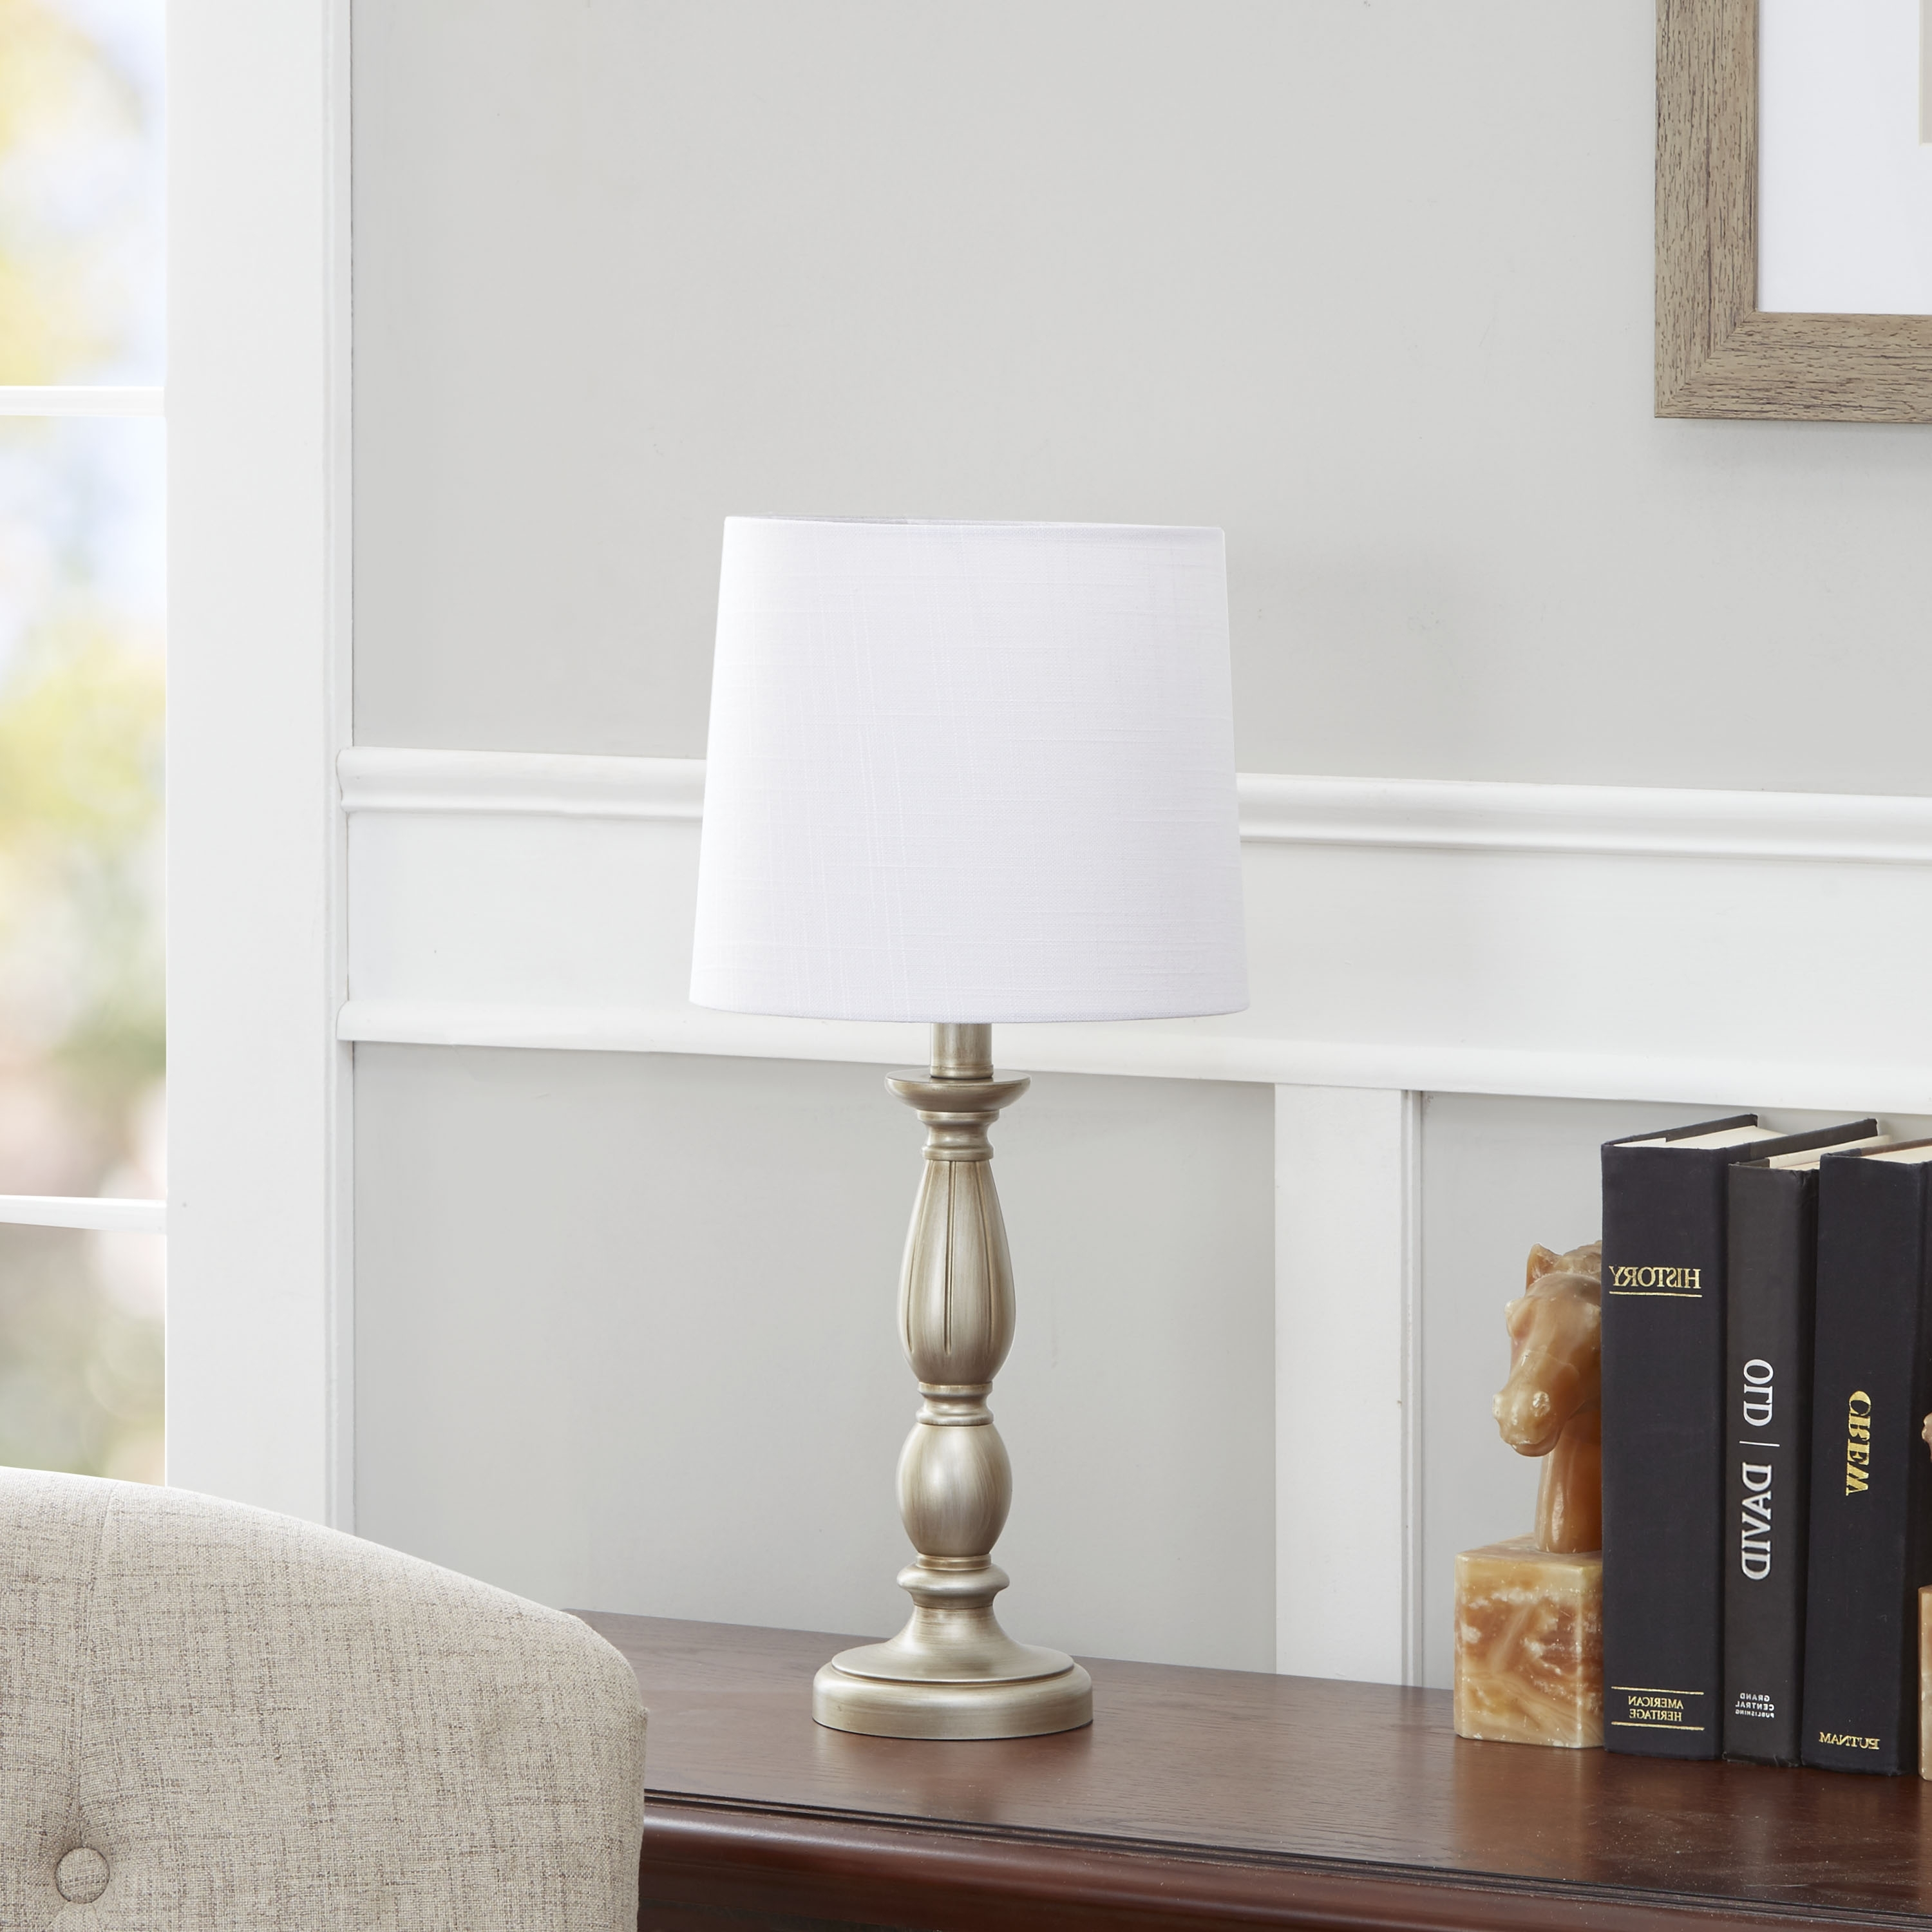 Set Of 2 Living Room Table Lamps Regarding Recent Table Lamp Lamps For Bedroom Nightstand Living Room Set Of 2 With (View 2 of 15)